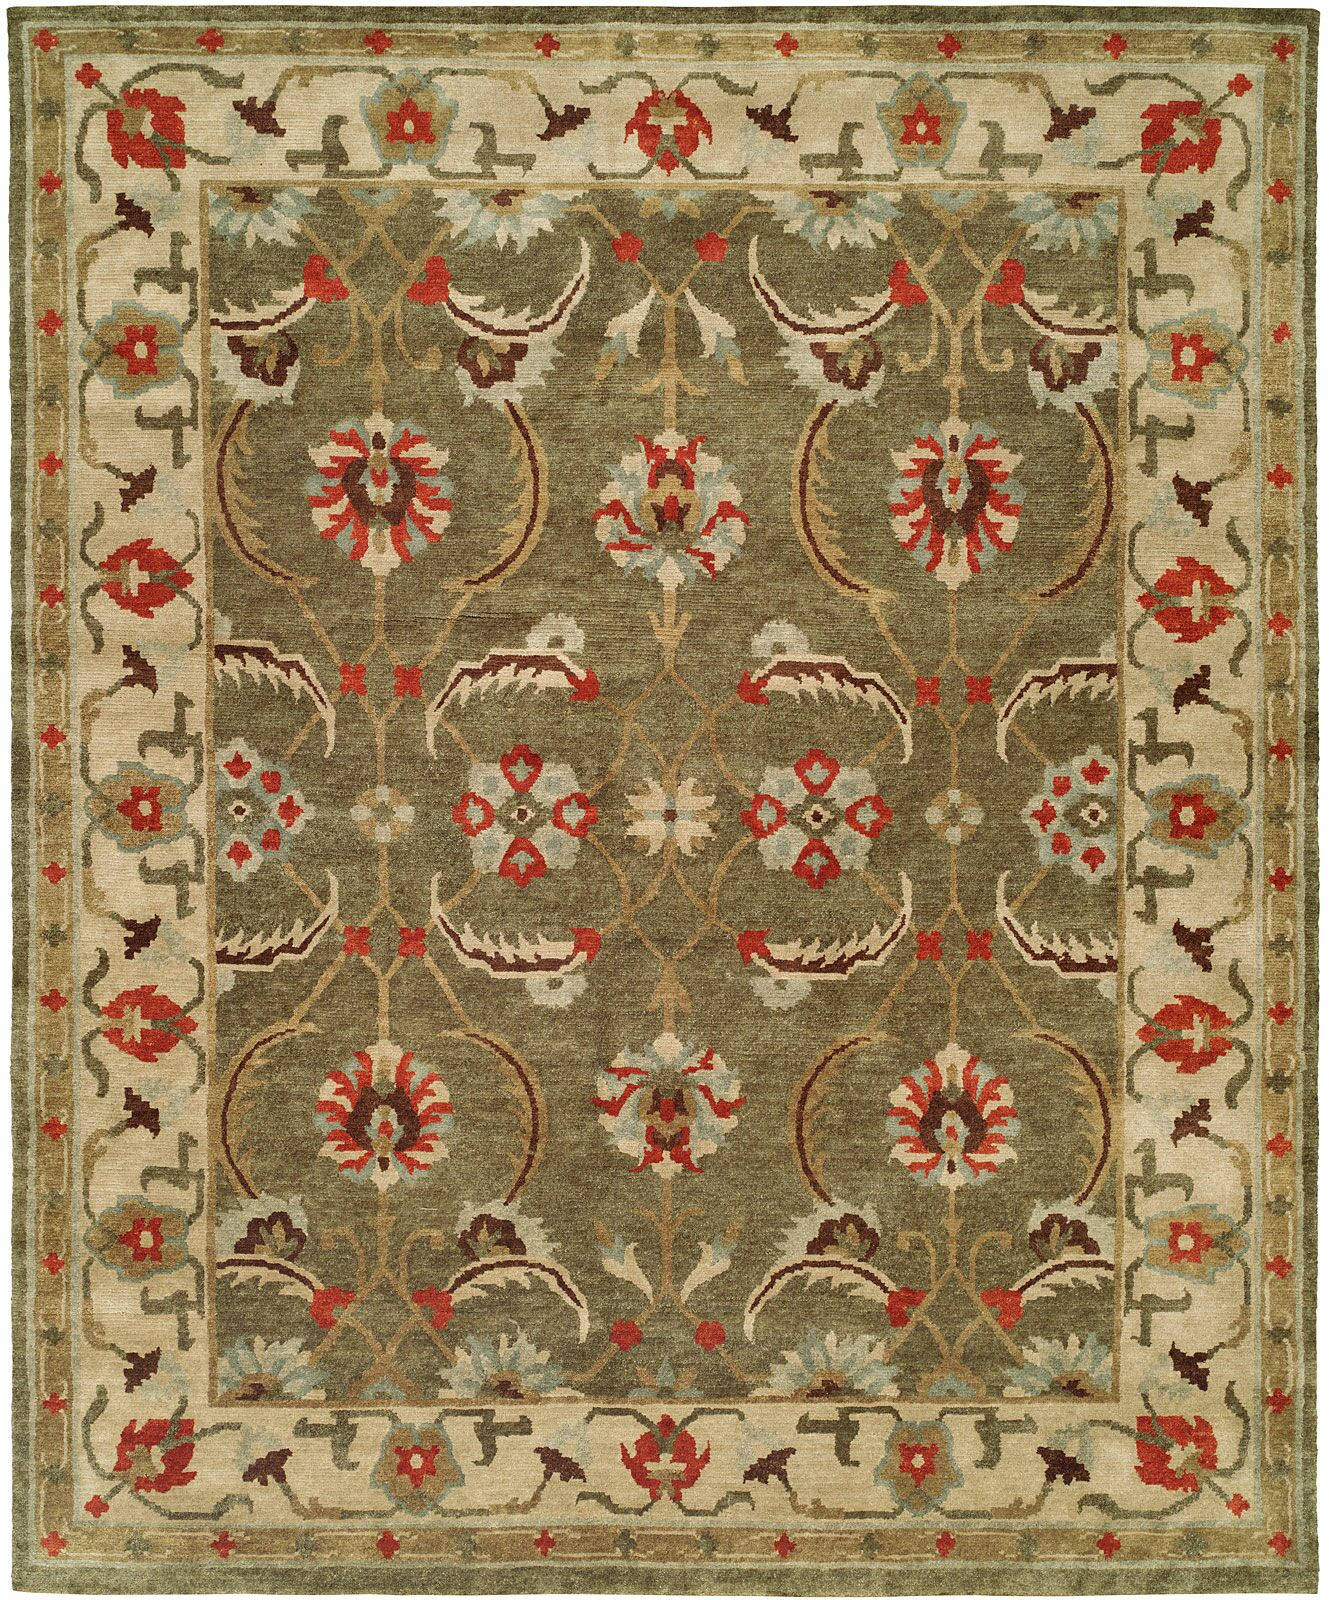 Hor Hand Knotted Wool Green/IvoryArea Rug Rug Size: Rectangle 6' x 9'